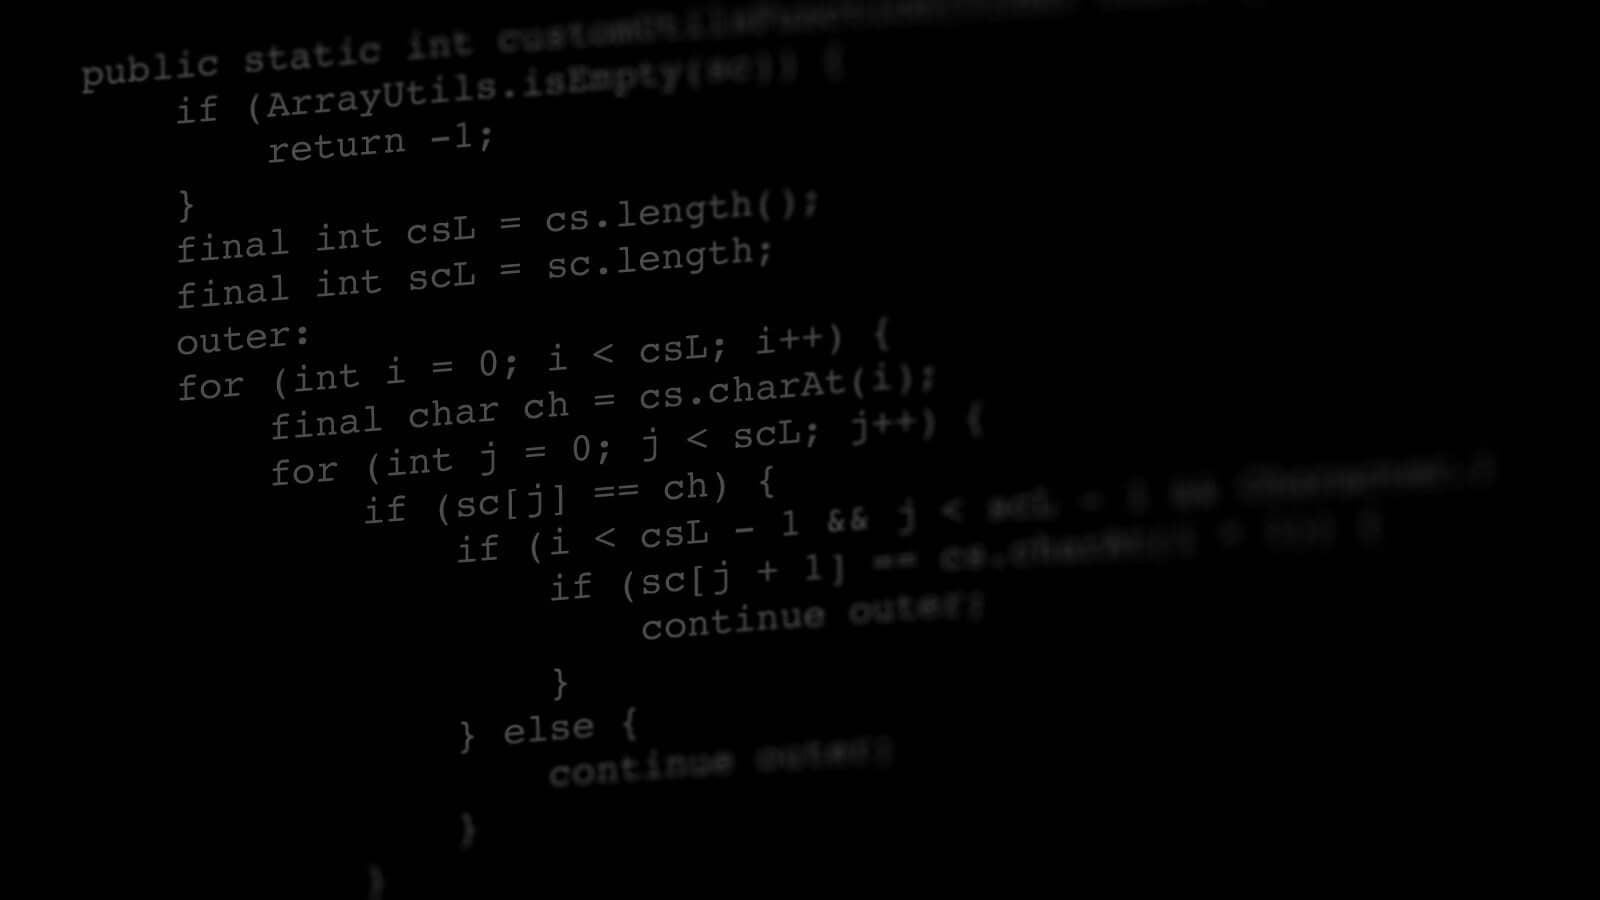 How many lines of code would you need?